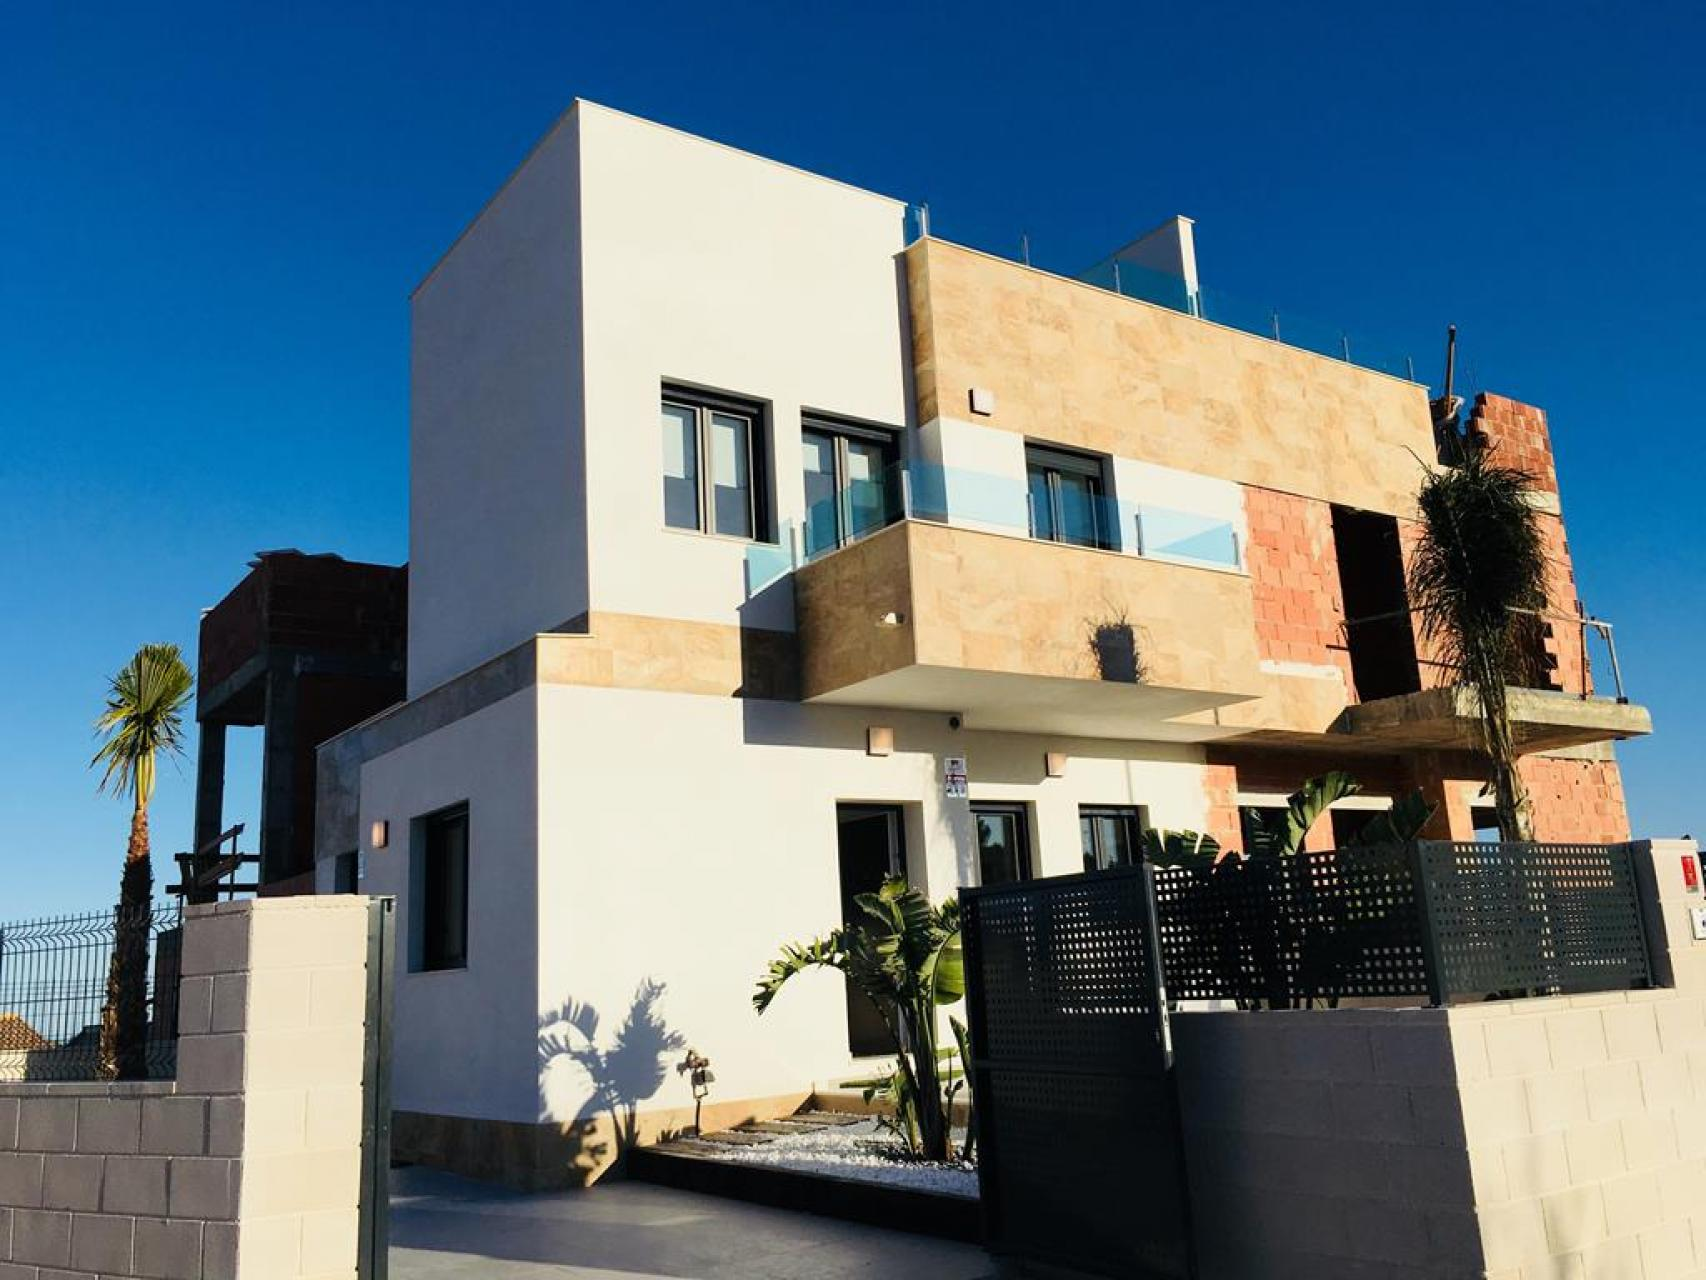 Townhouse in Polop (Alicante)